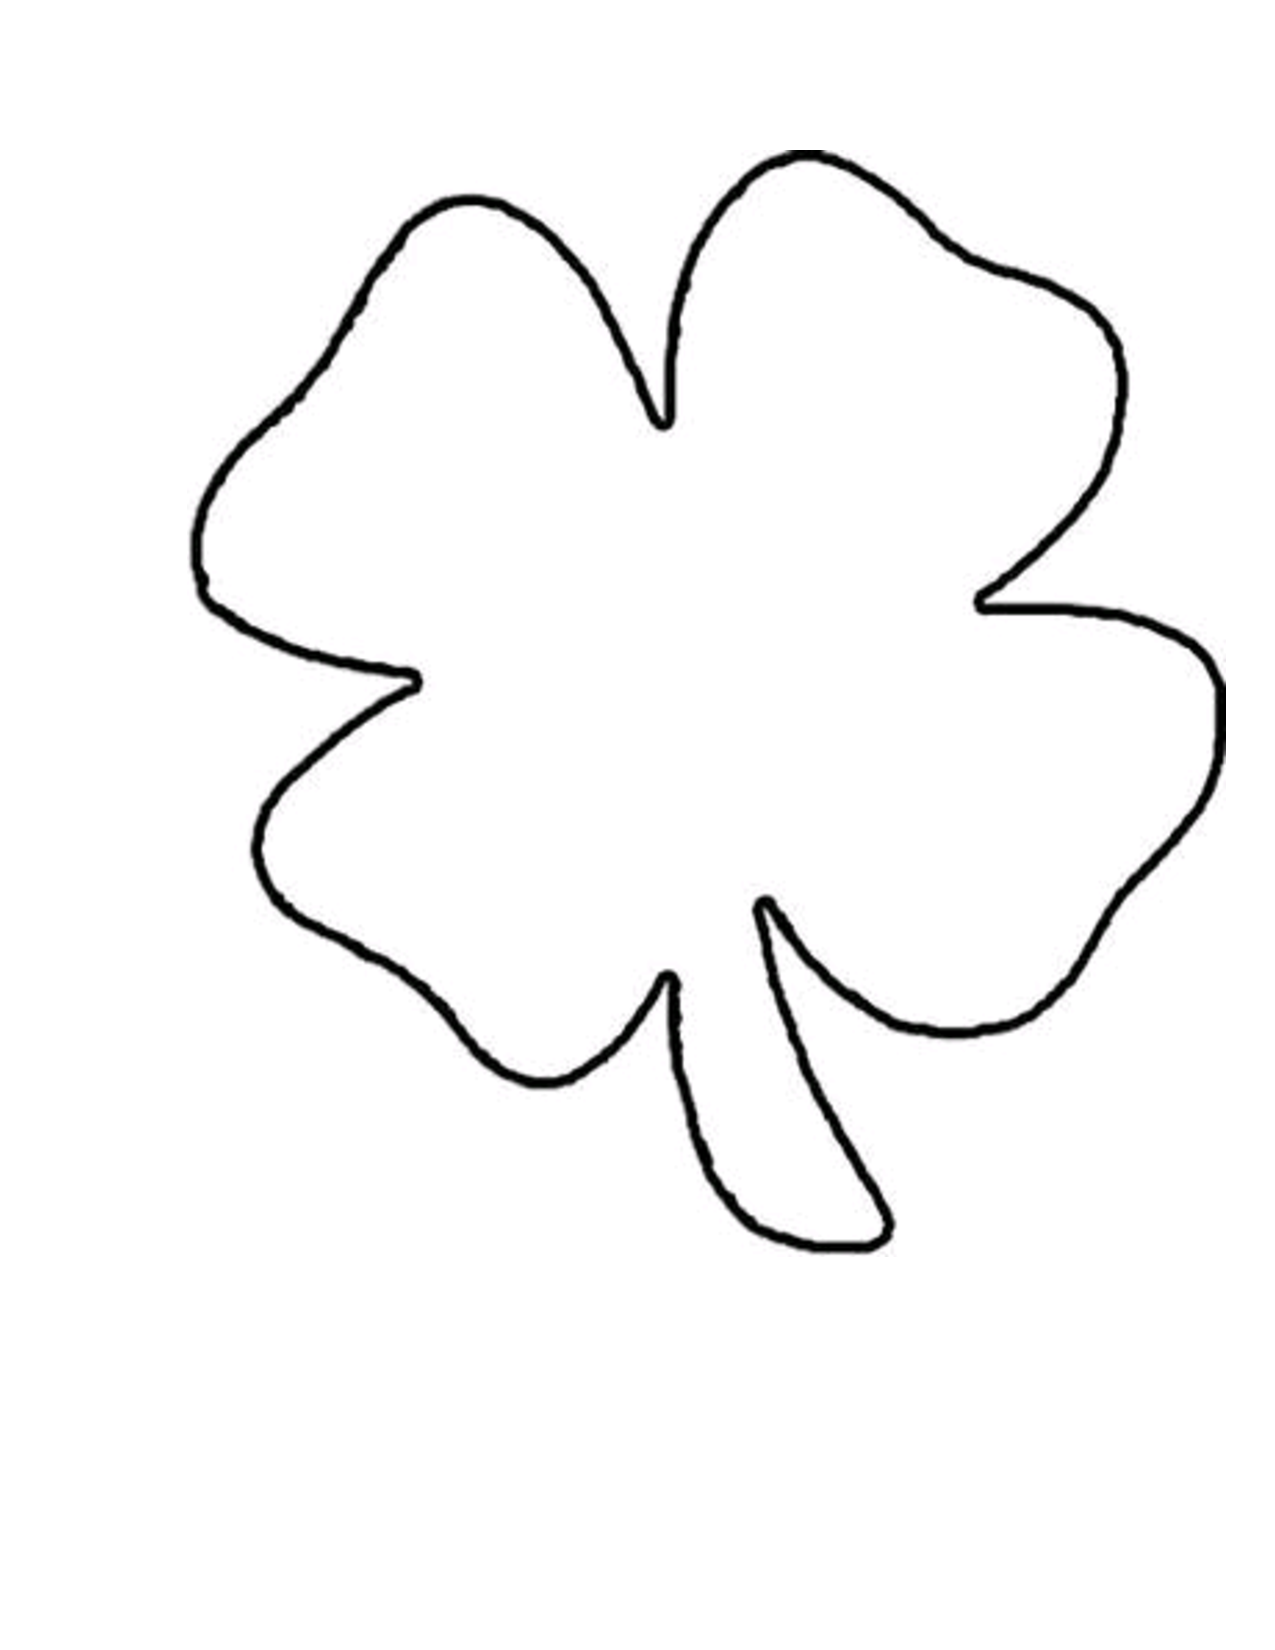 picture regarding Shamrock Printable Template identify 4+Clover+Leaf+Template+Shamrock+Practice st. patricks